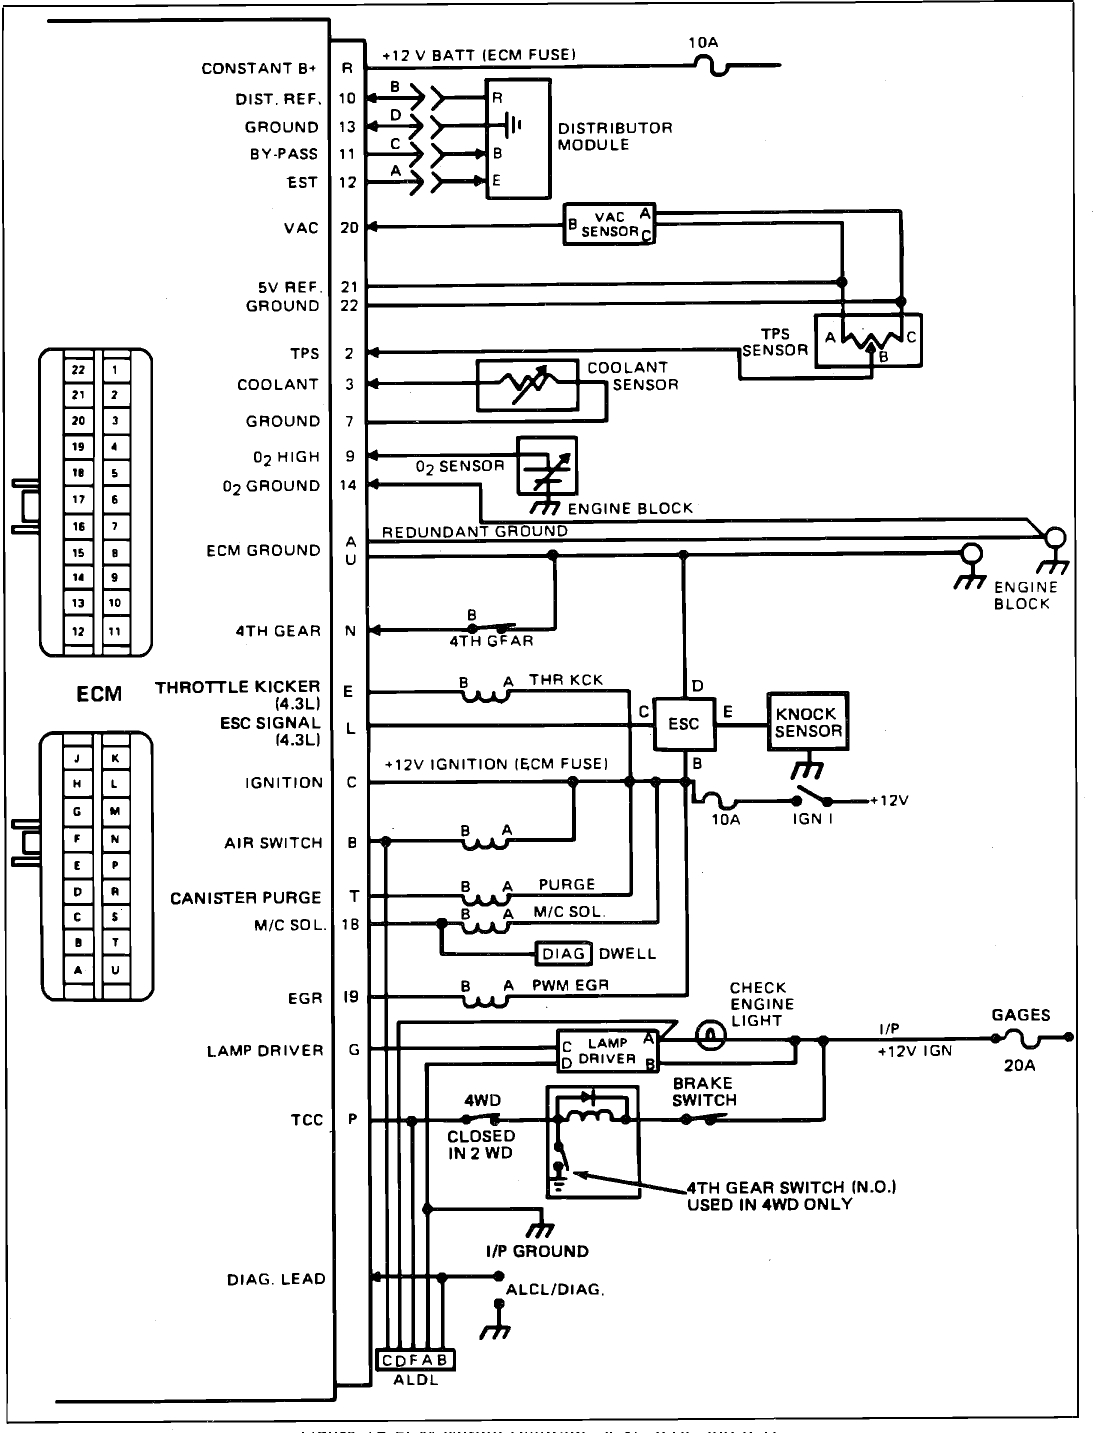 i need a fuse box diagram with wiring colors rh 2carpros com Basic Electrical Schematic Diagrams Simple Wiring Diagrams